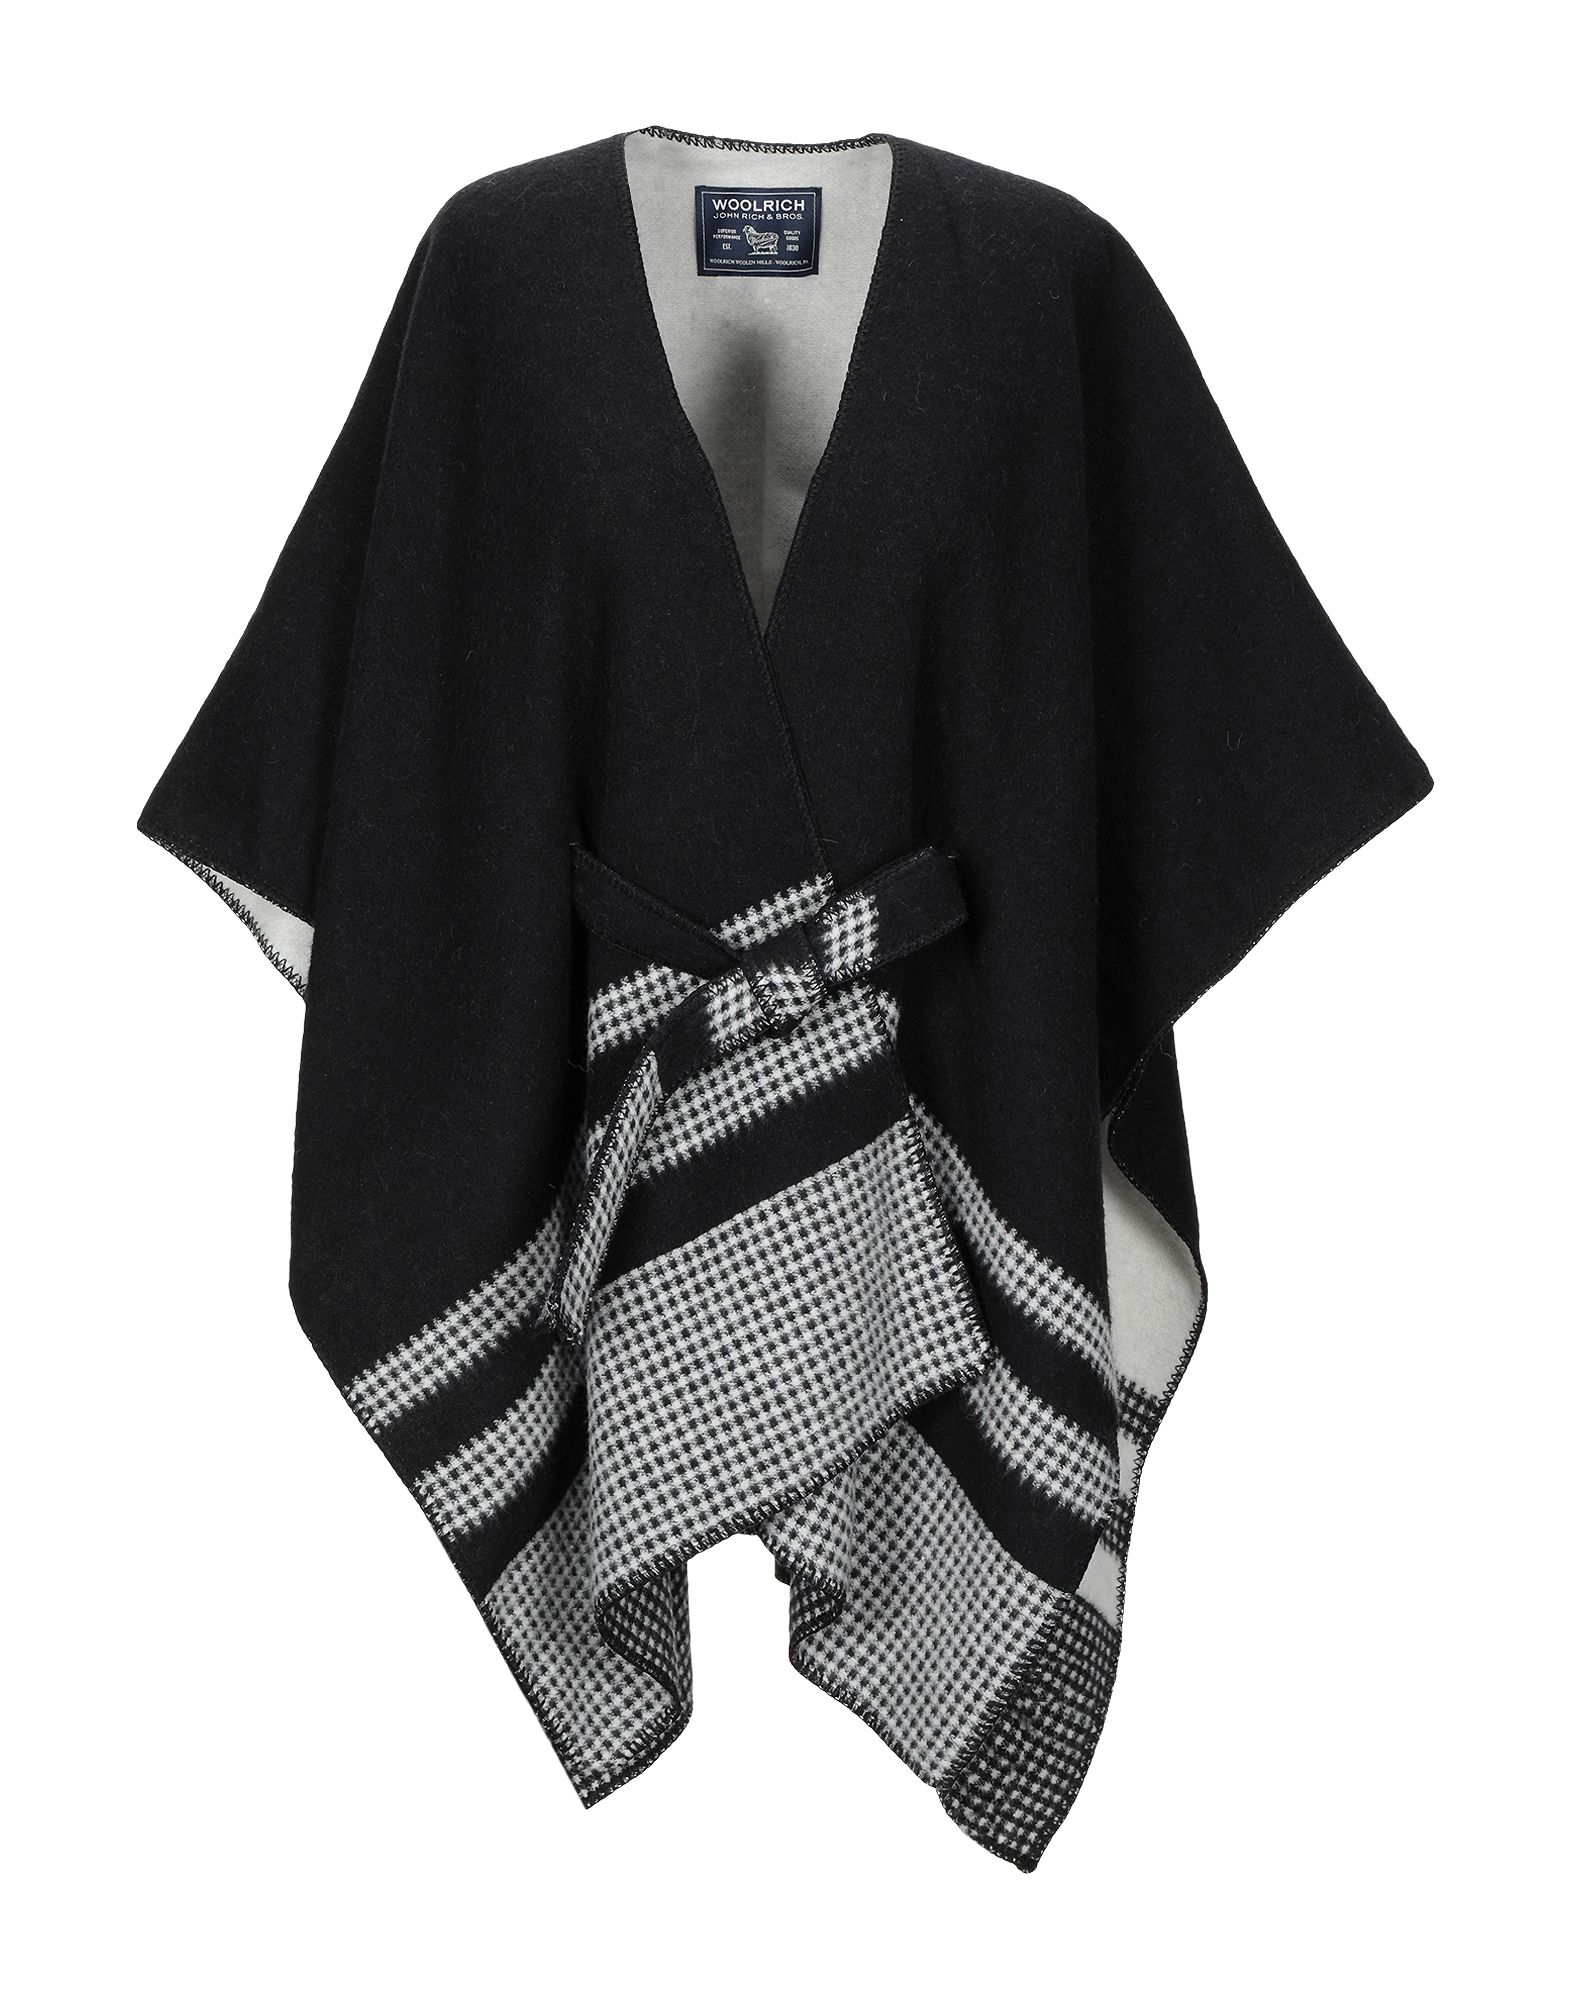 woolrich wraps, capes & ponchos scarves for women - Buy best